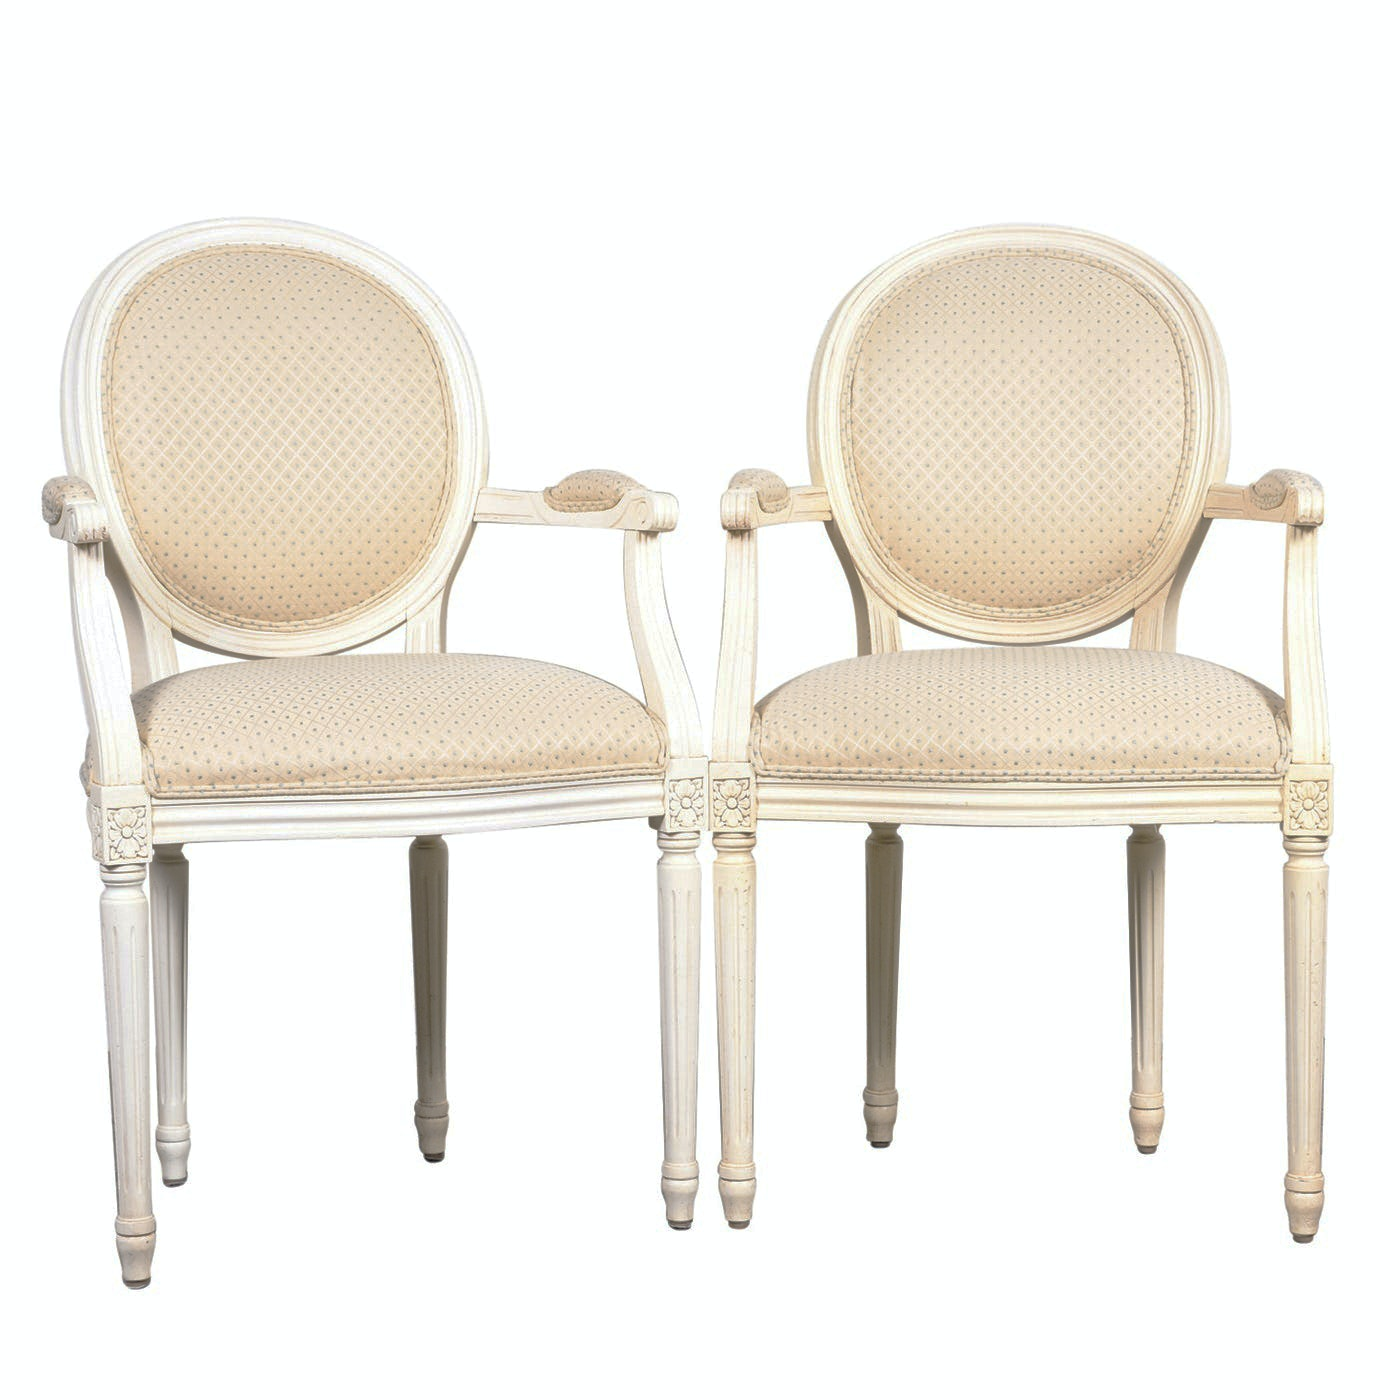 """Louis XVI Style """"Chrystiane"""" armchairs by Ethan Allen"""